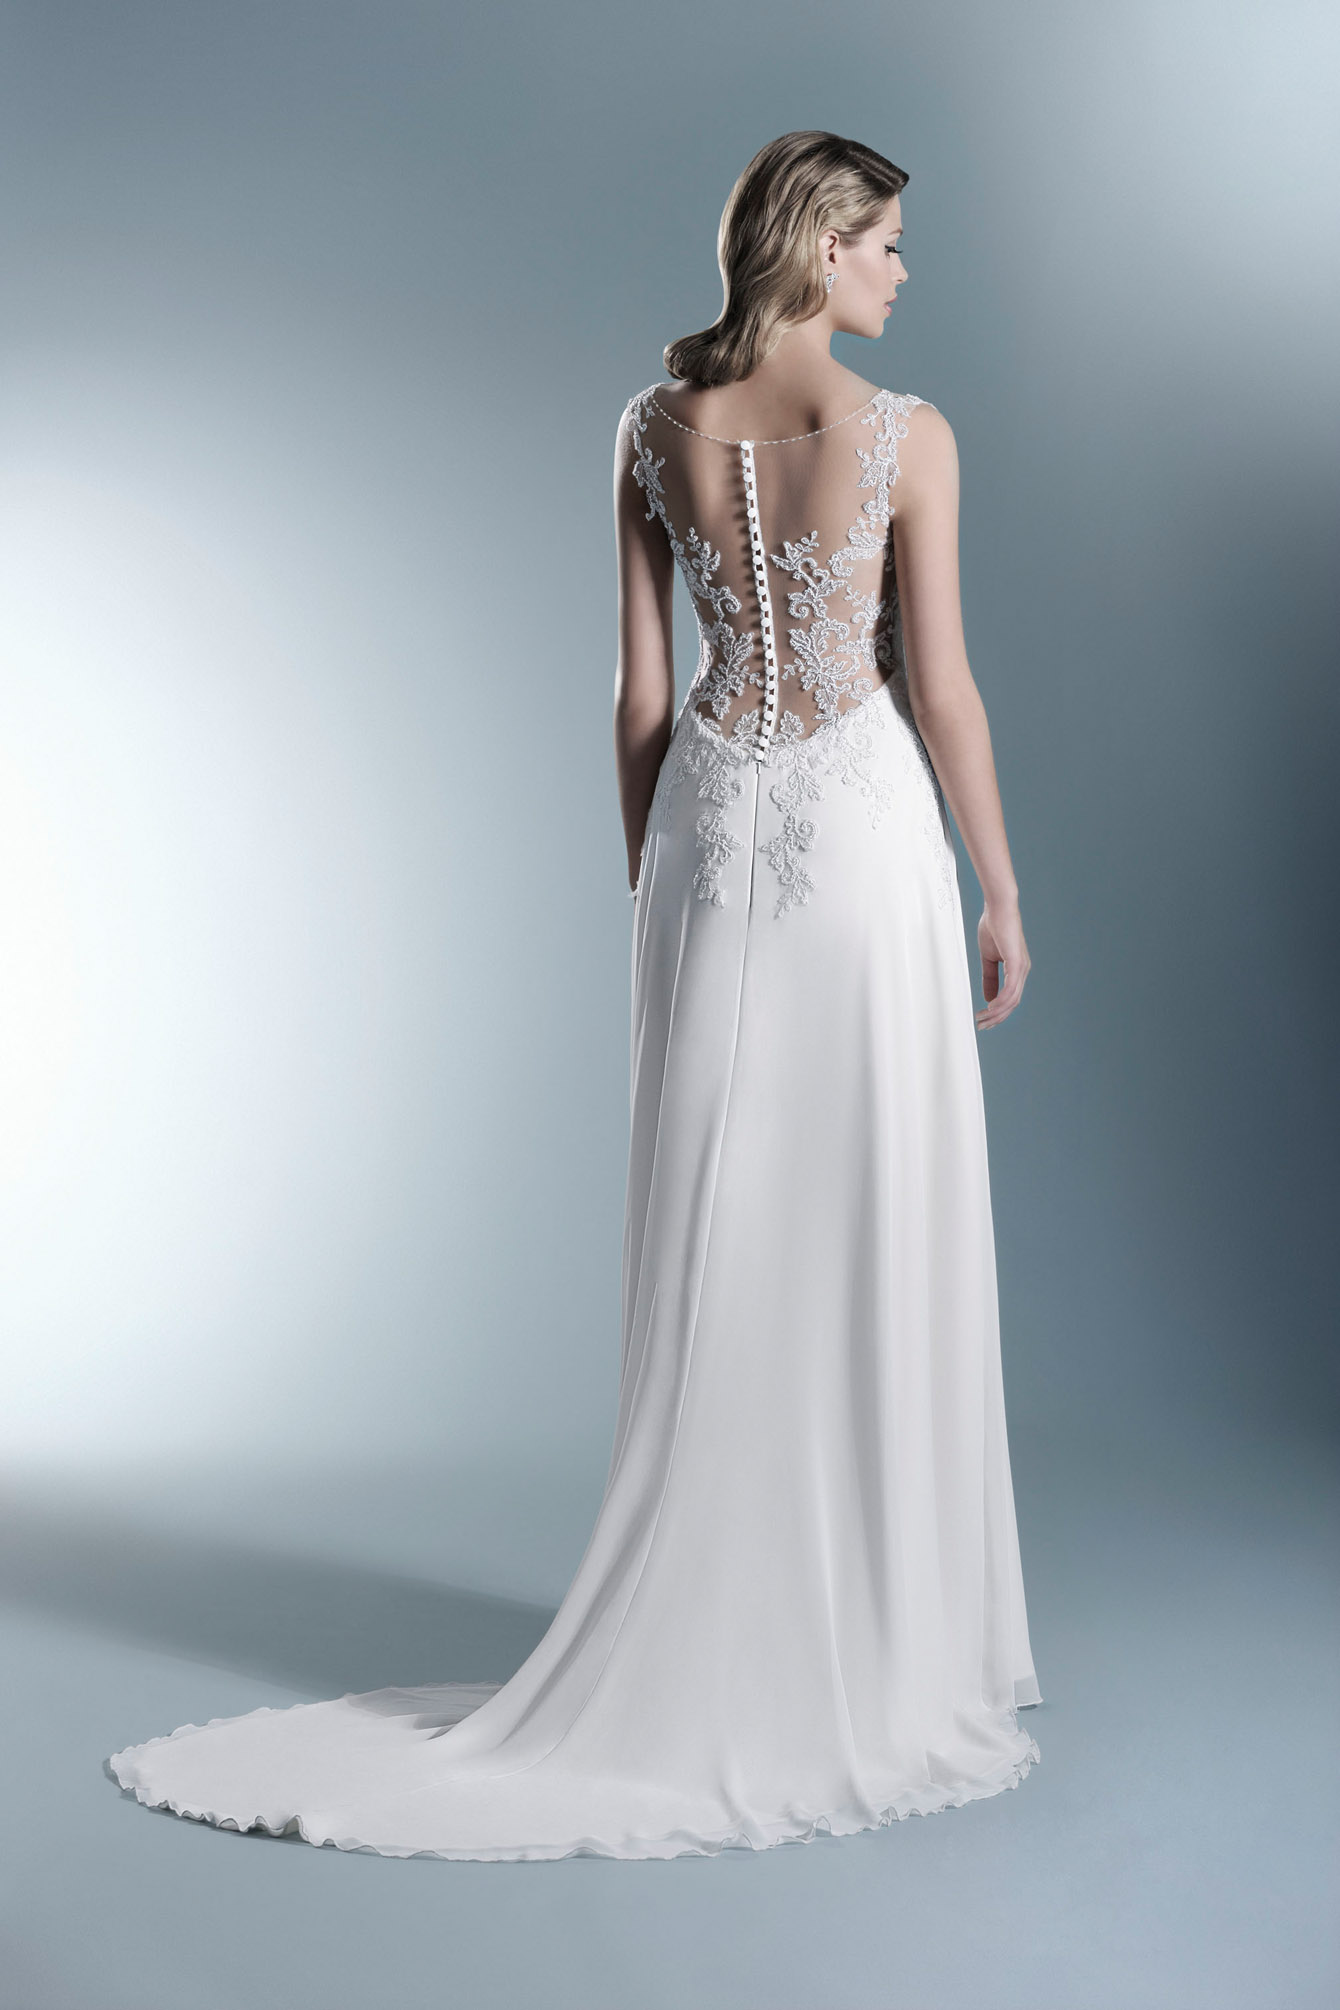 TO-625T - The One 2017 - Wedding dresses - Agnes - lace wedding ...